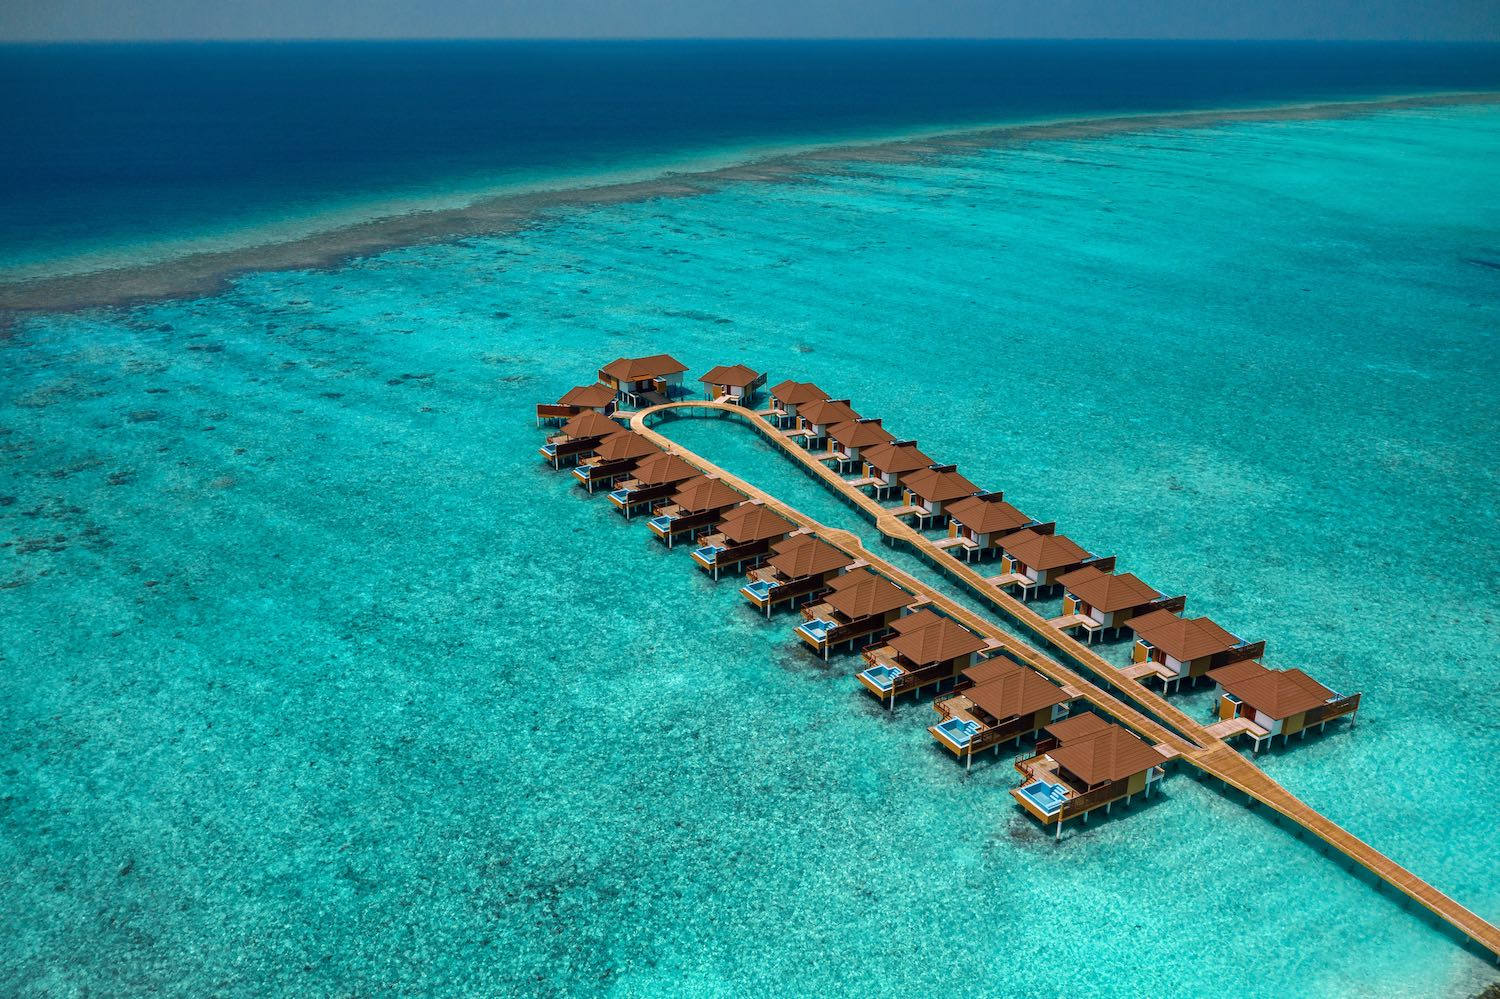 maldives-varu-by-atmosphere-water-villa-jetty-aerial-holiday-honeymoon-vacation-invite-to-paradise   .jpg